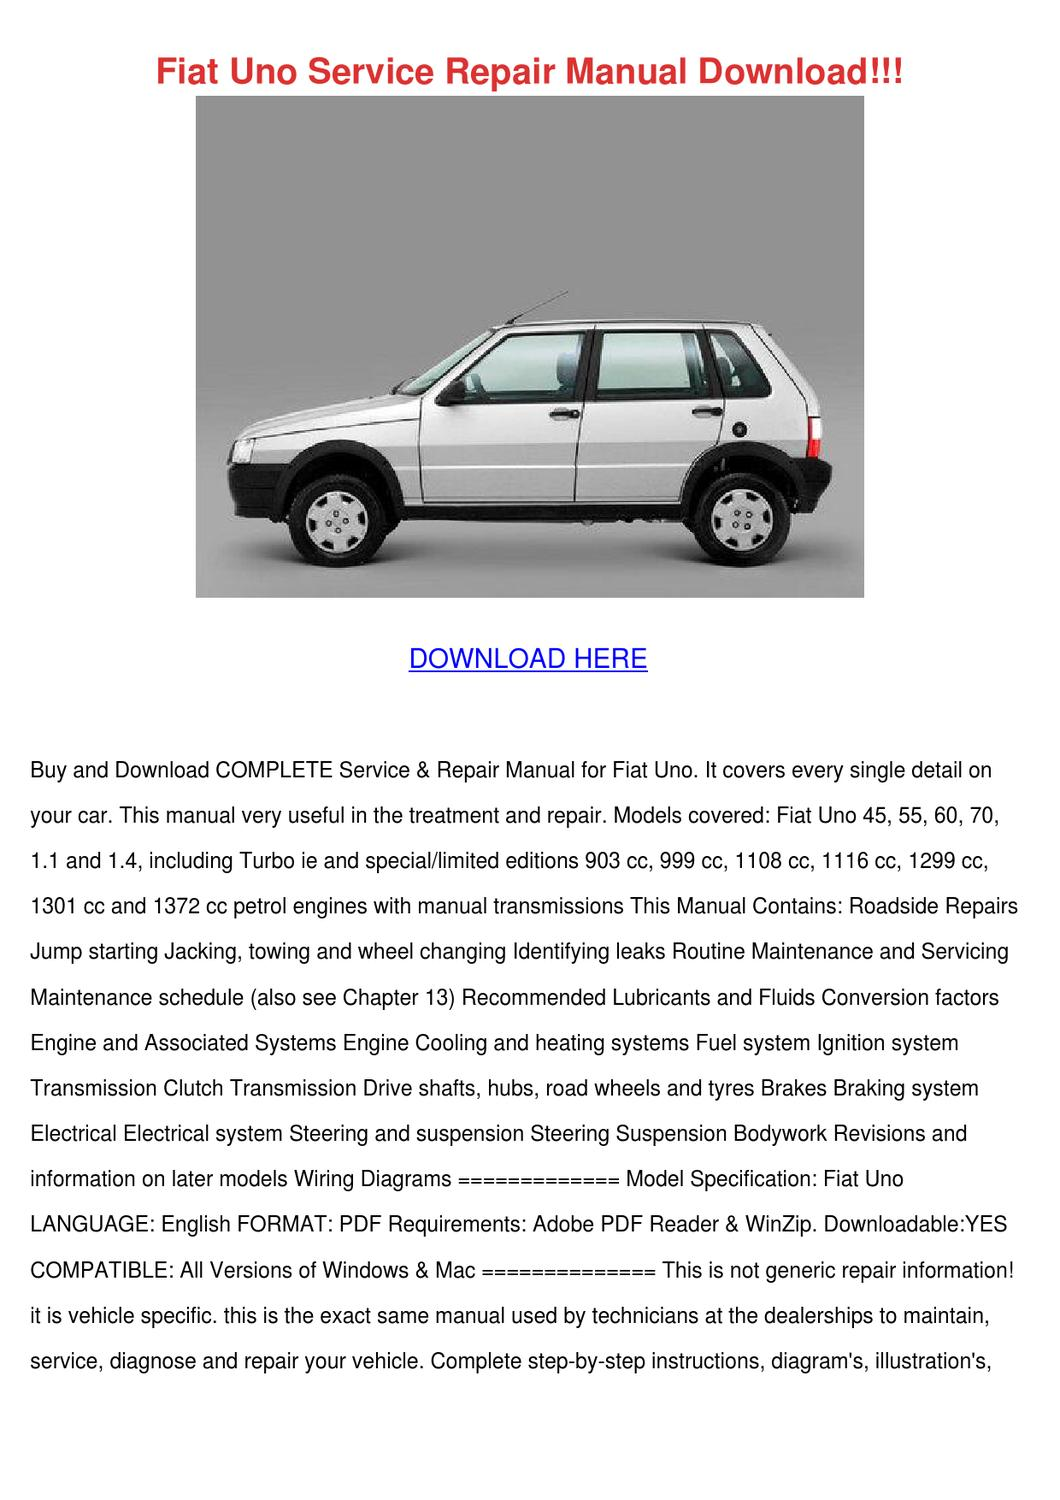 fiat uno service repair manual download by unarobison issuu. Black Bedroom Furniture Sets. Home Design Ideas